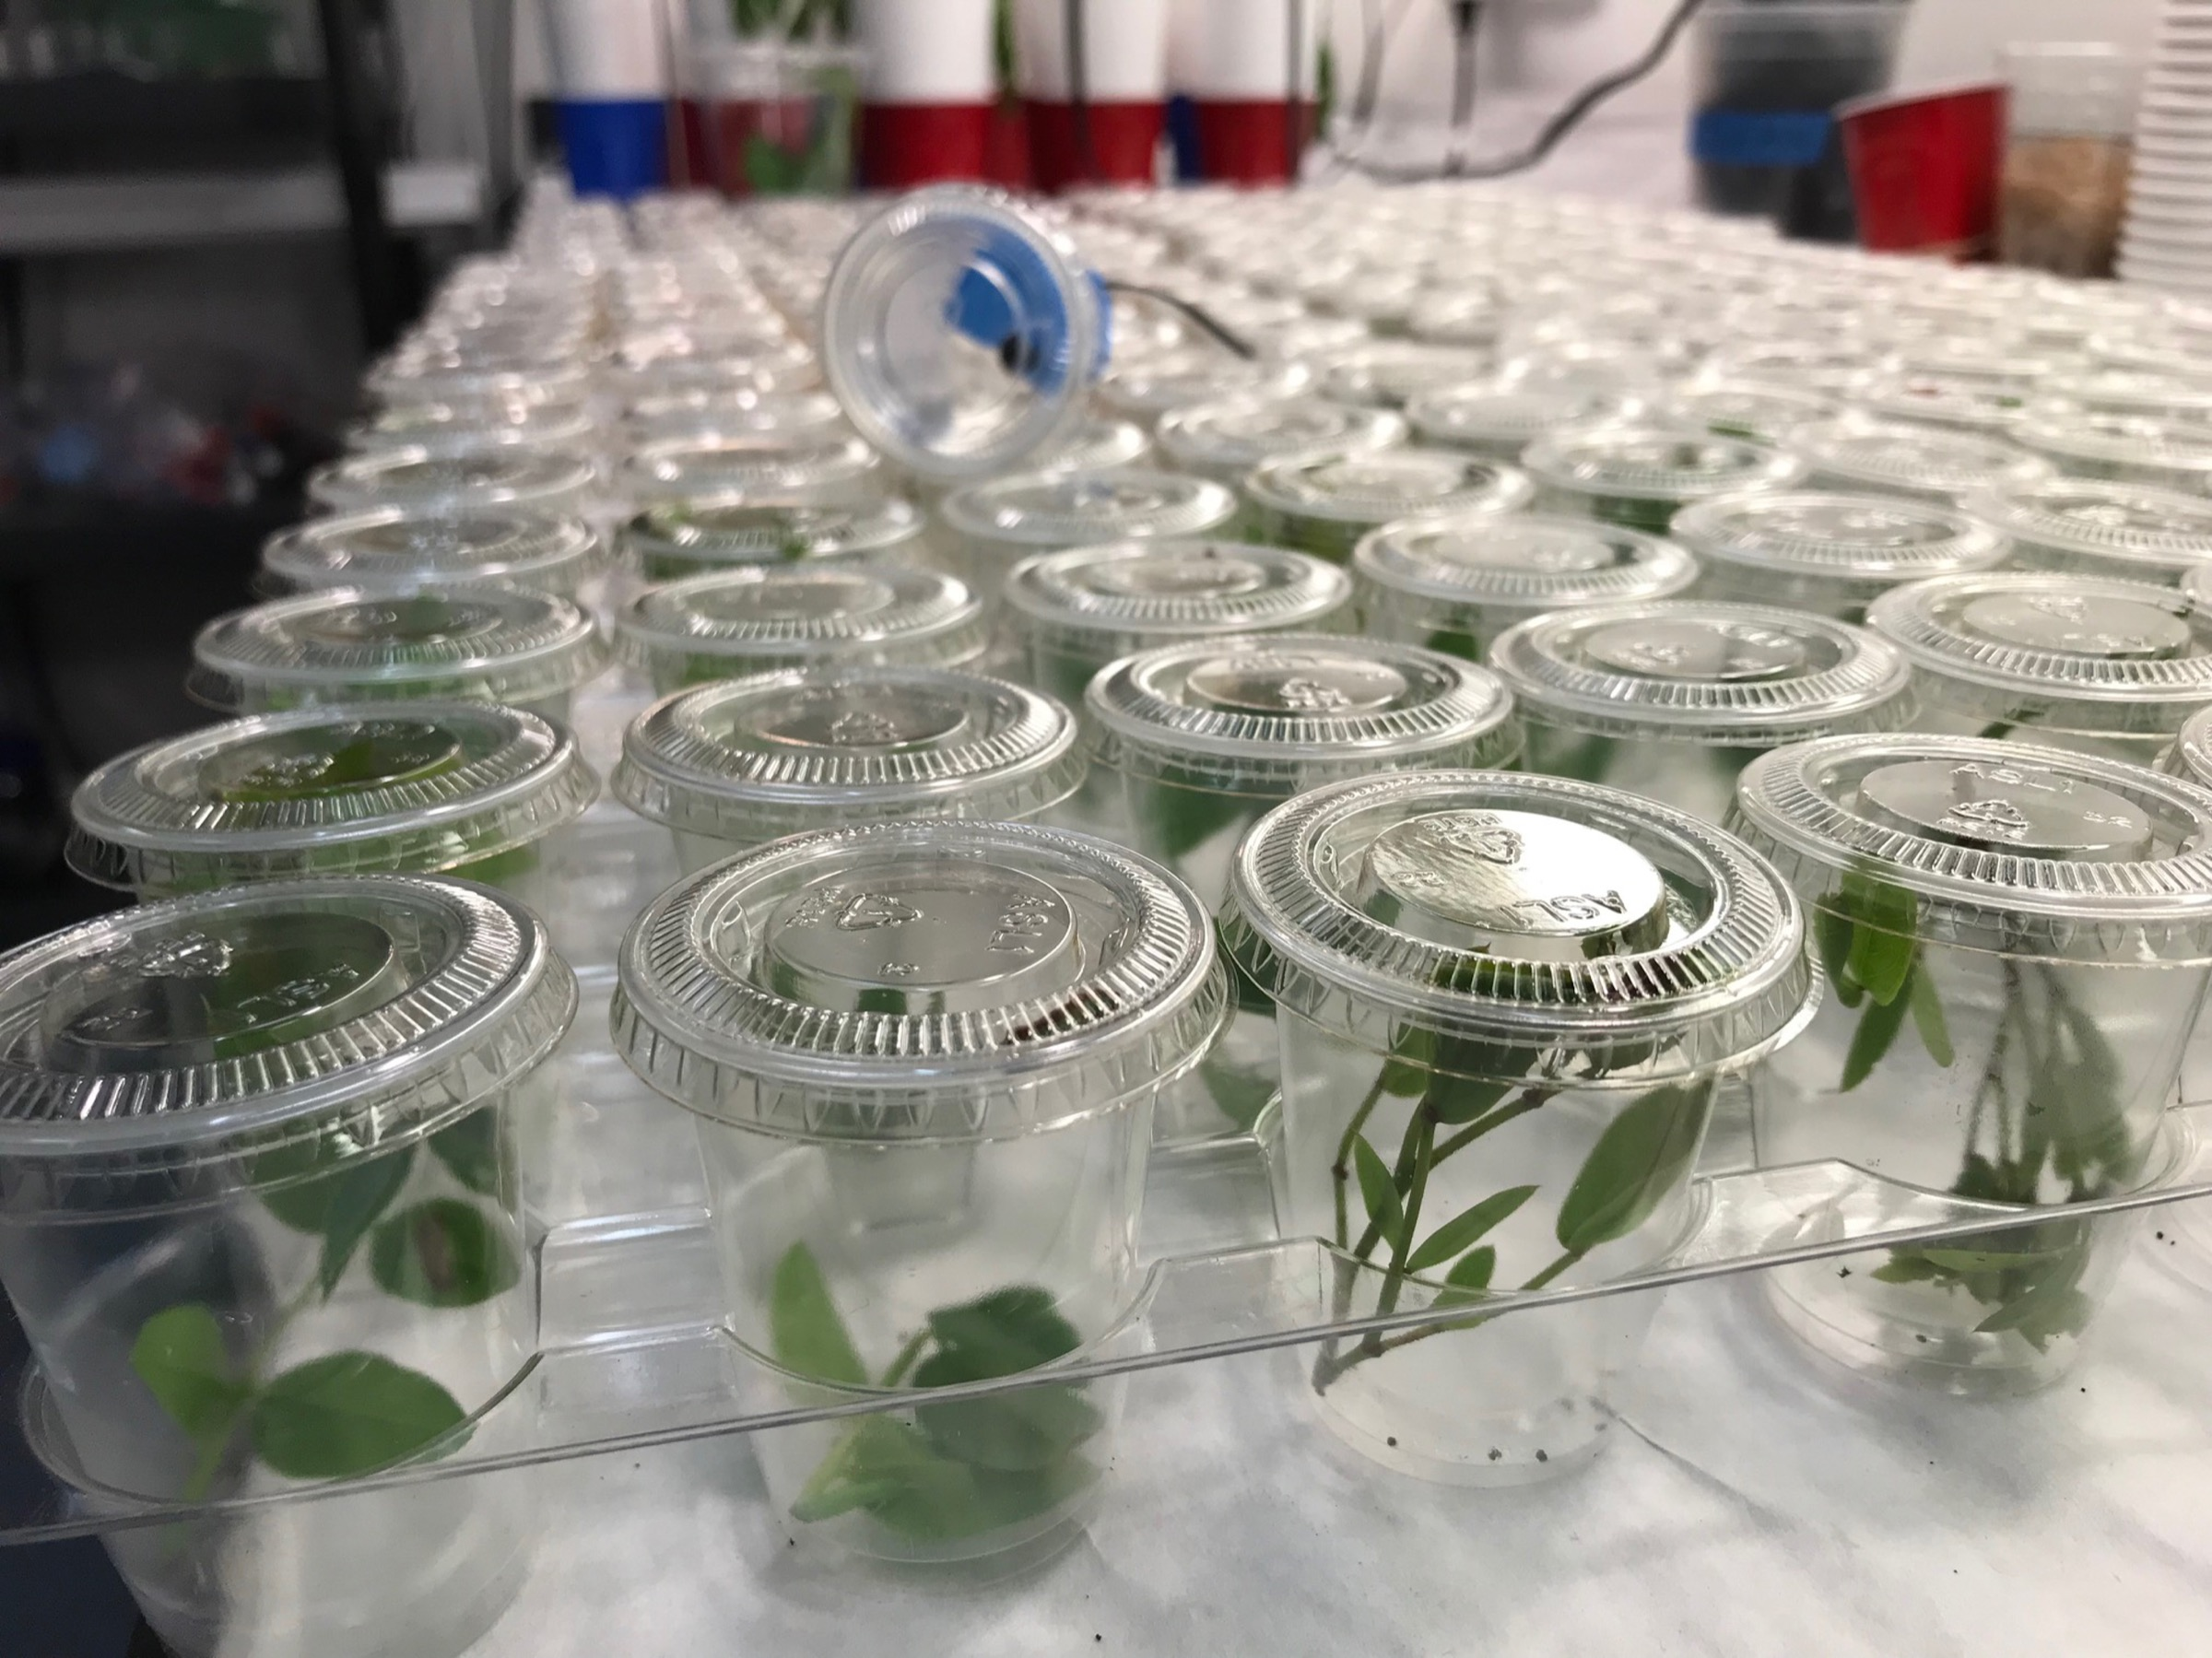 Jaret Daniels and other scientists at the Florida Museum of Natural History are successfully rearing Miami blues and other rare butterflies in captivity—and releasing them—in an effort to increase numbers of the insects in the wild. Each small cup in this in this image holds a single Miami blue larva. Photograph by Jaret C. Daniels